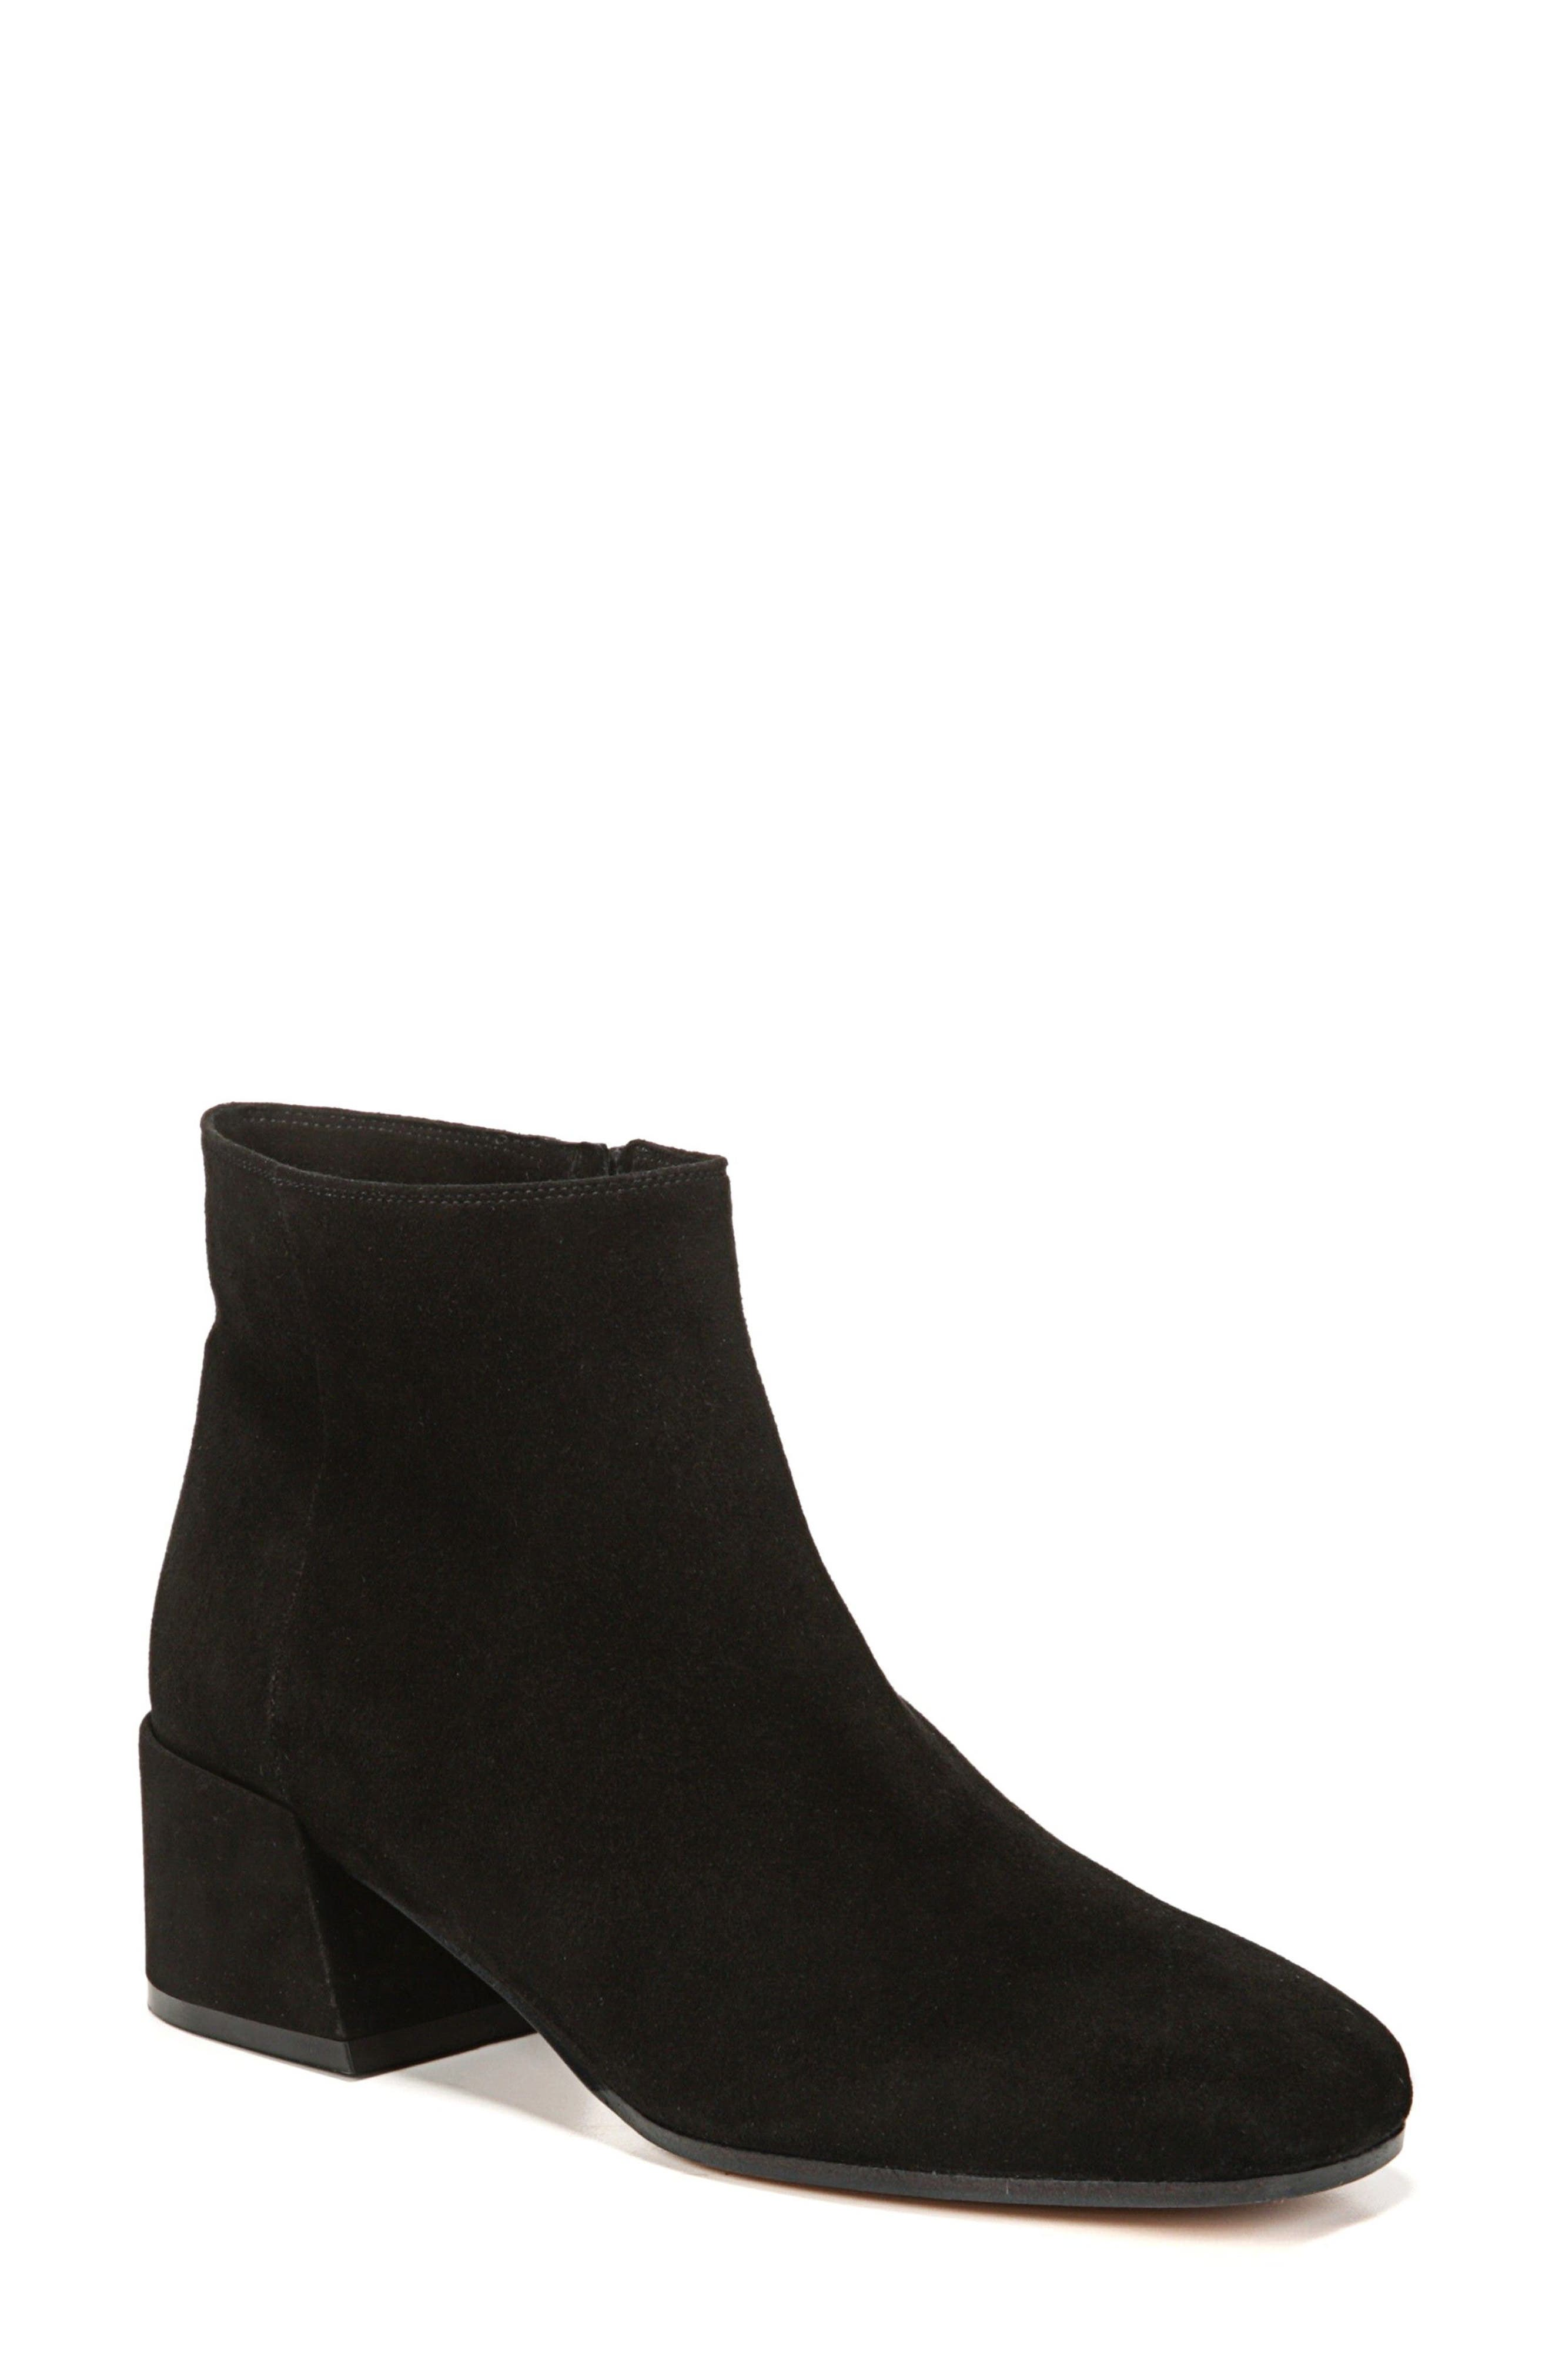 Ostend Bootie,                         Main,                         color,